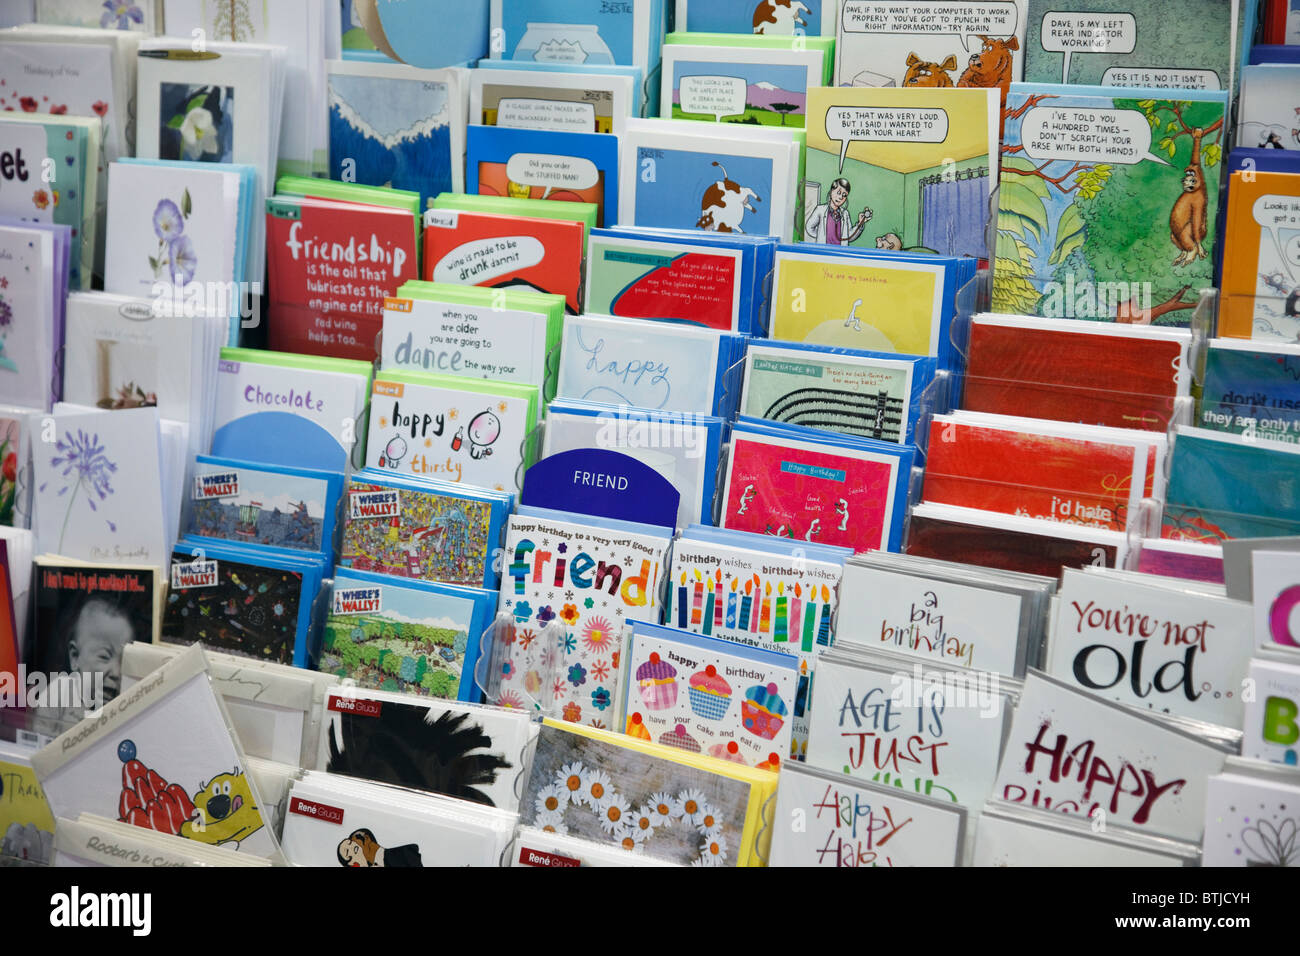 Birthday Cards For Sale On A Display Stand Inside Card Shop UK Europe